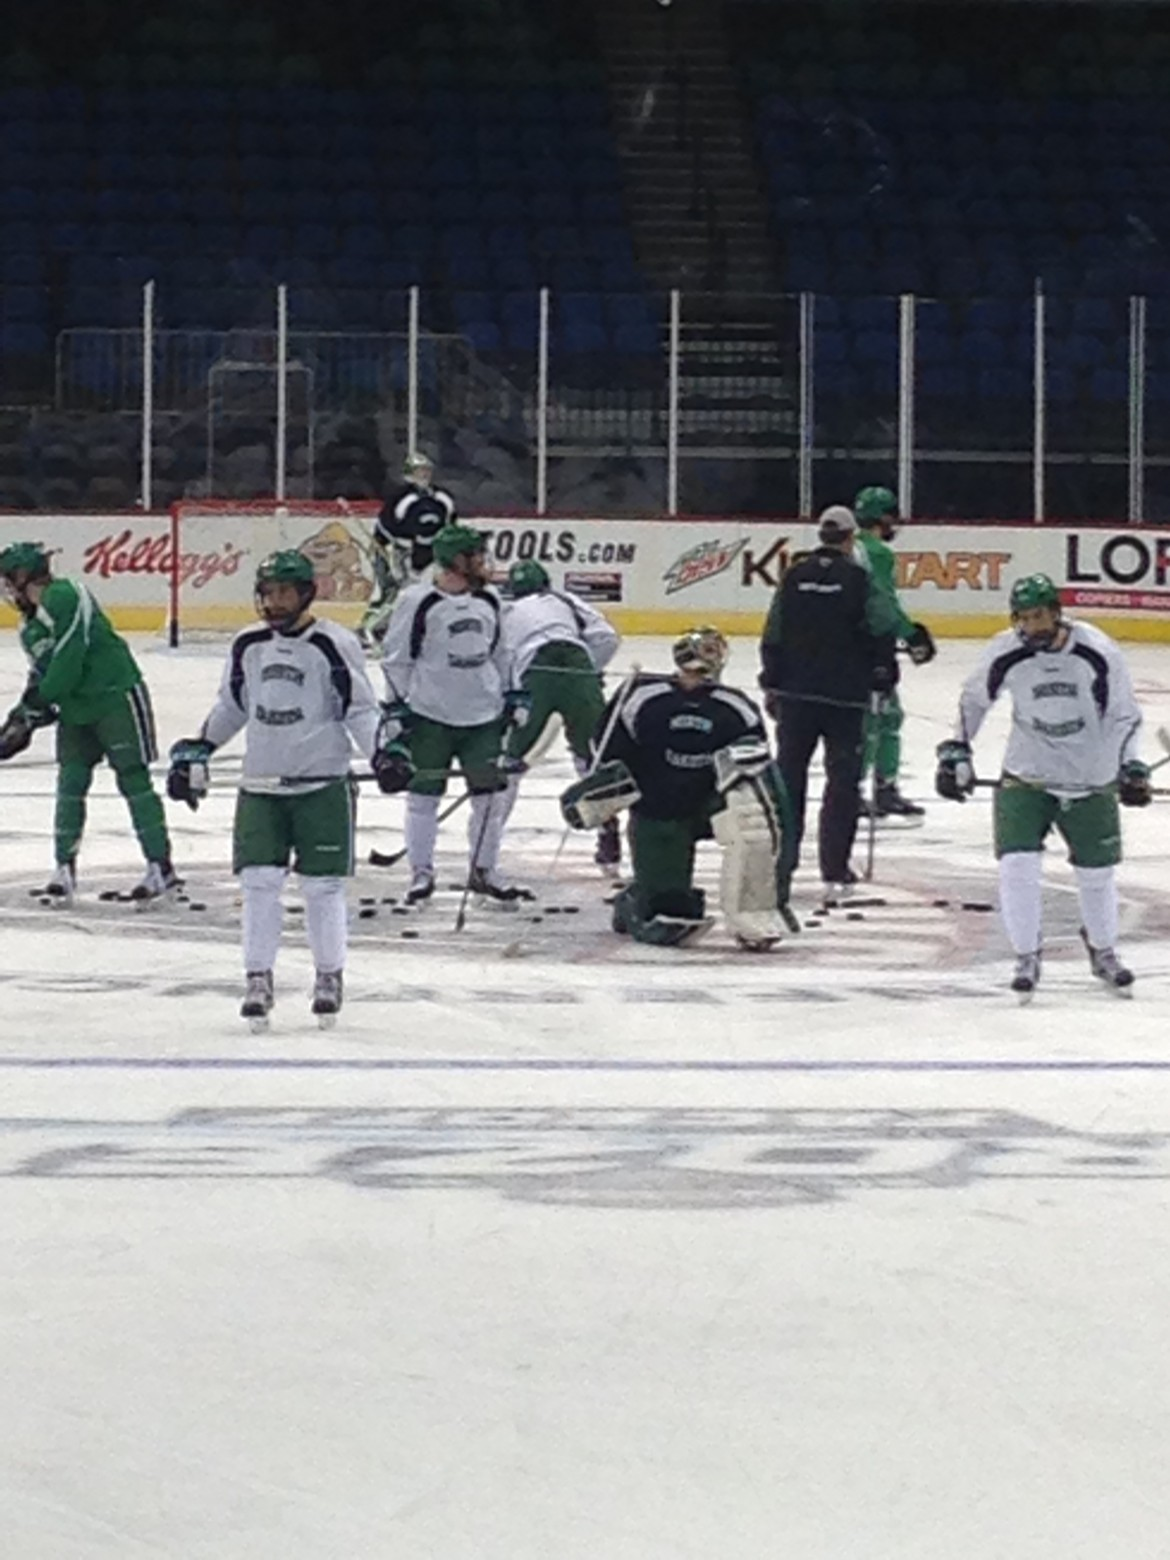 North Dakota practicing